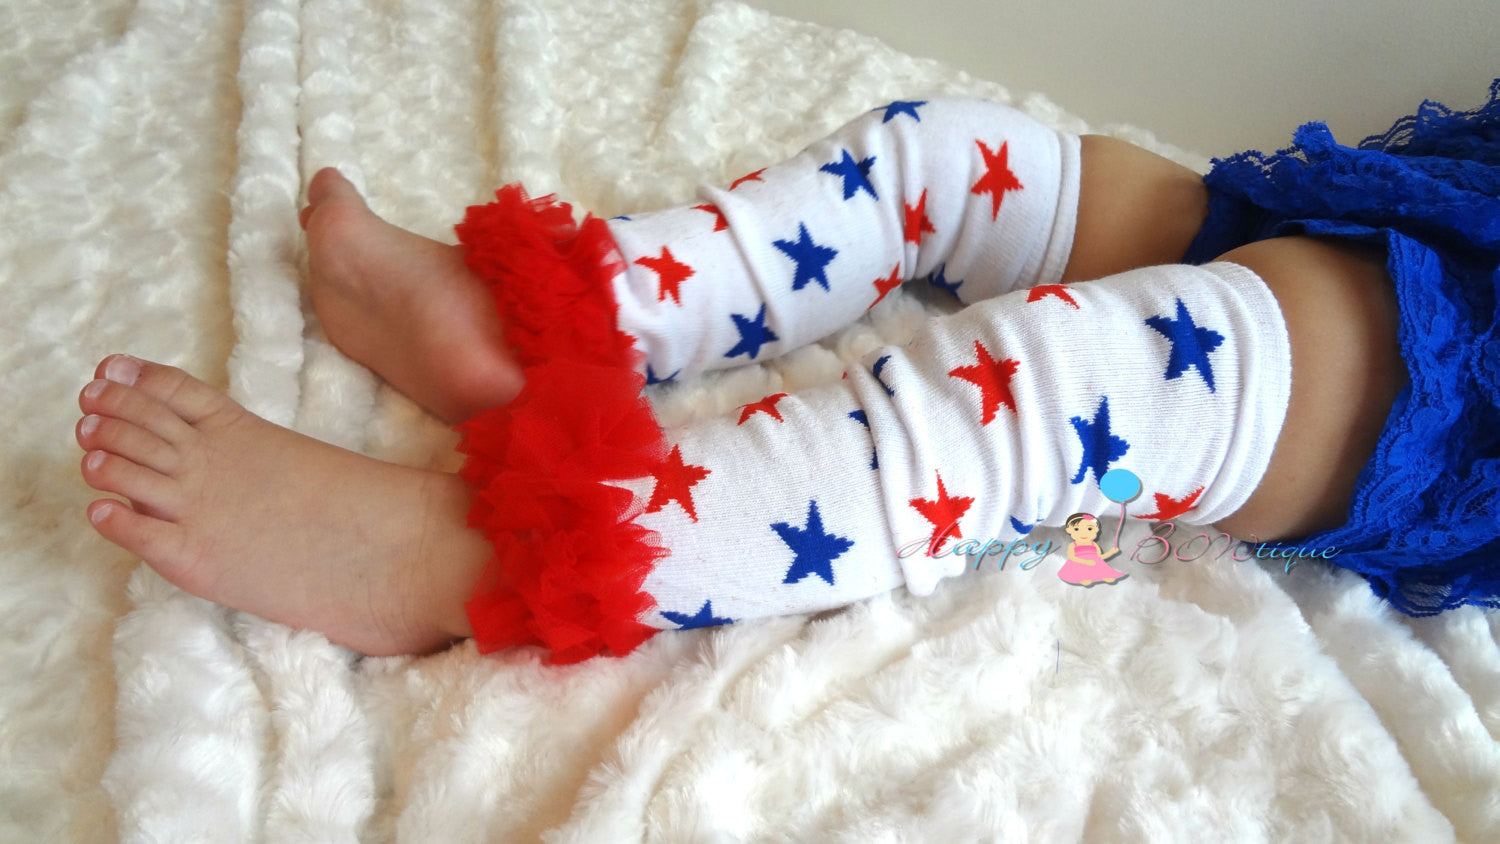 4th of July Stars Leg Warmers, Ruffle chiffon leg warmers, baby girls, girls leg warmers, baby leg warmers, USA, July 4th - Happy BOWtique - children's clothing, Baby Girl clothing